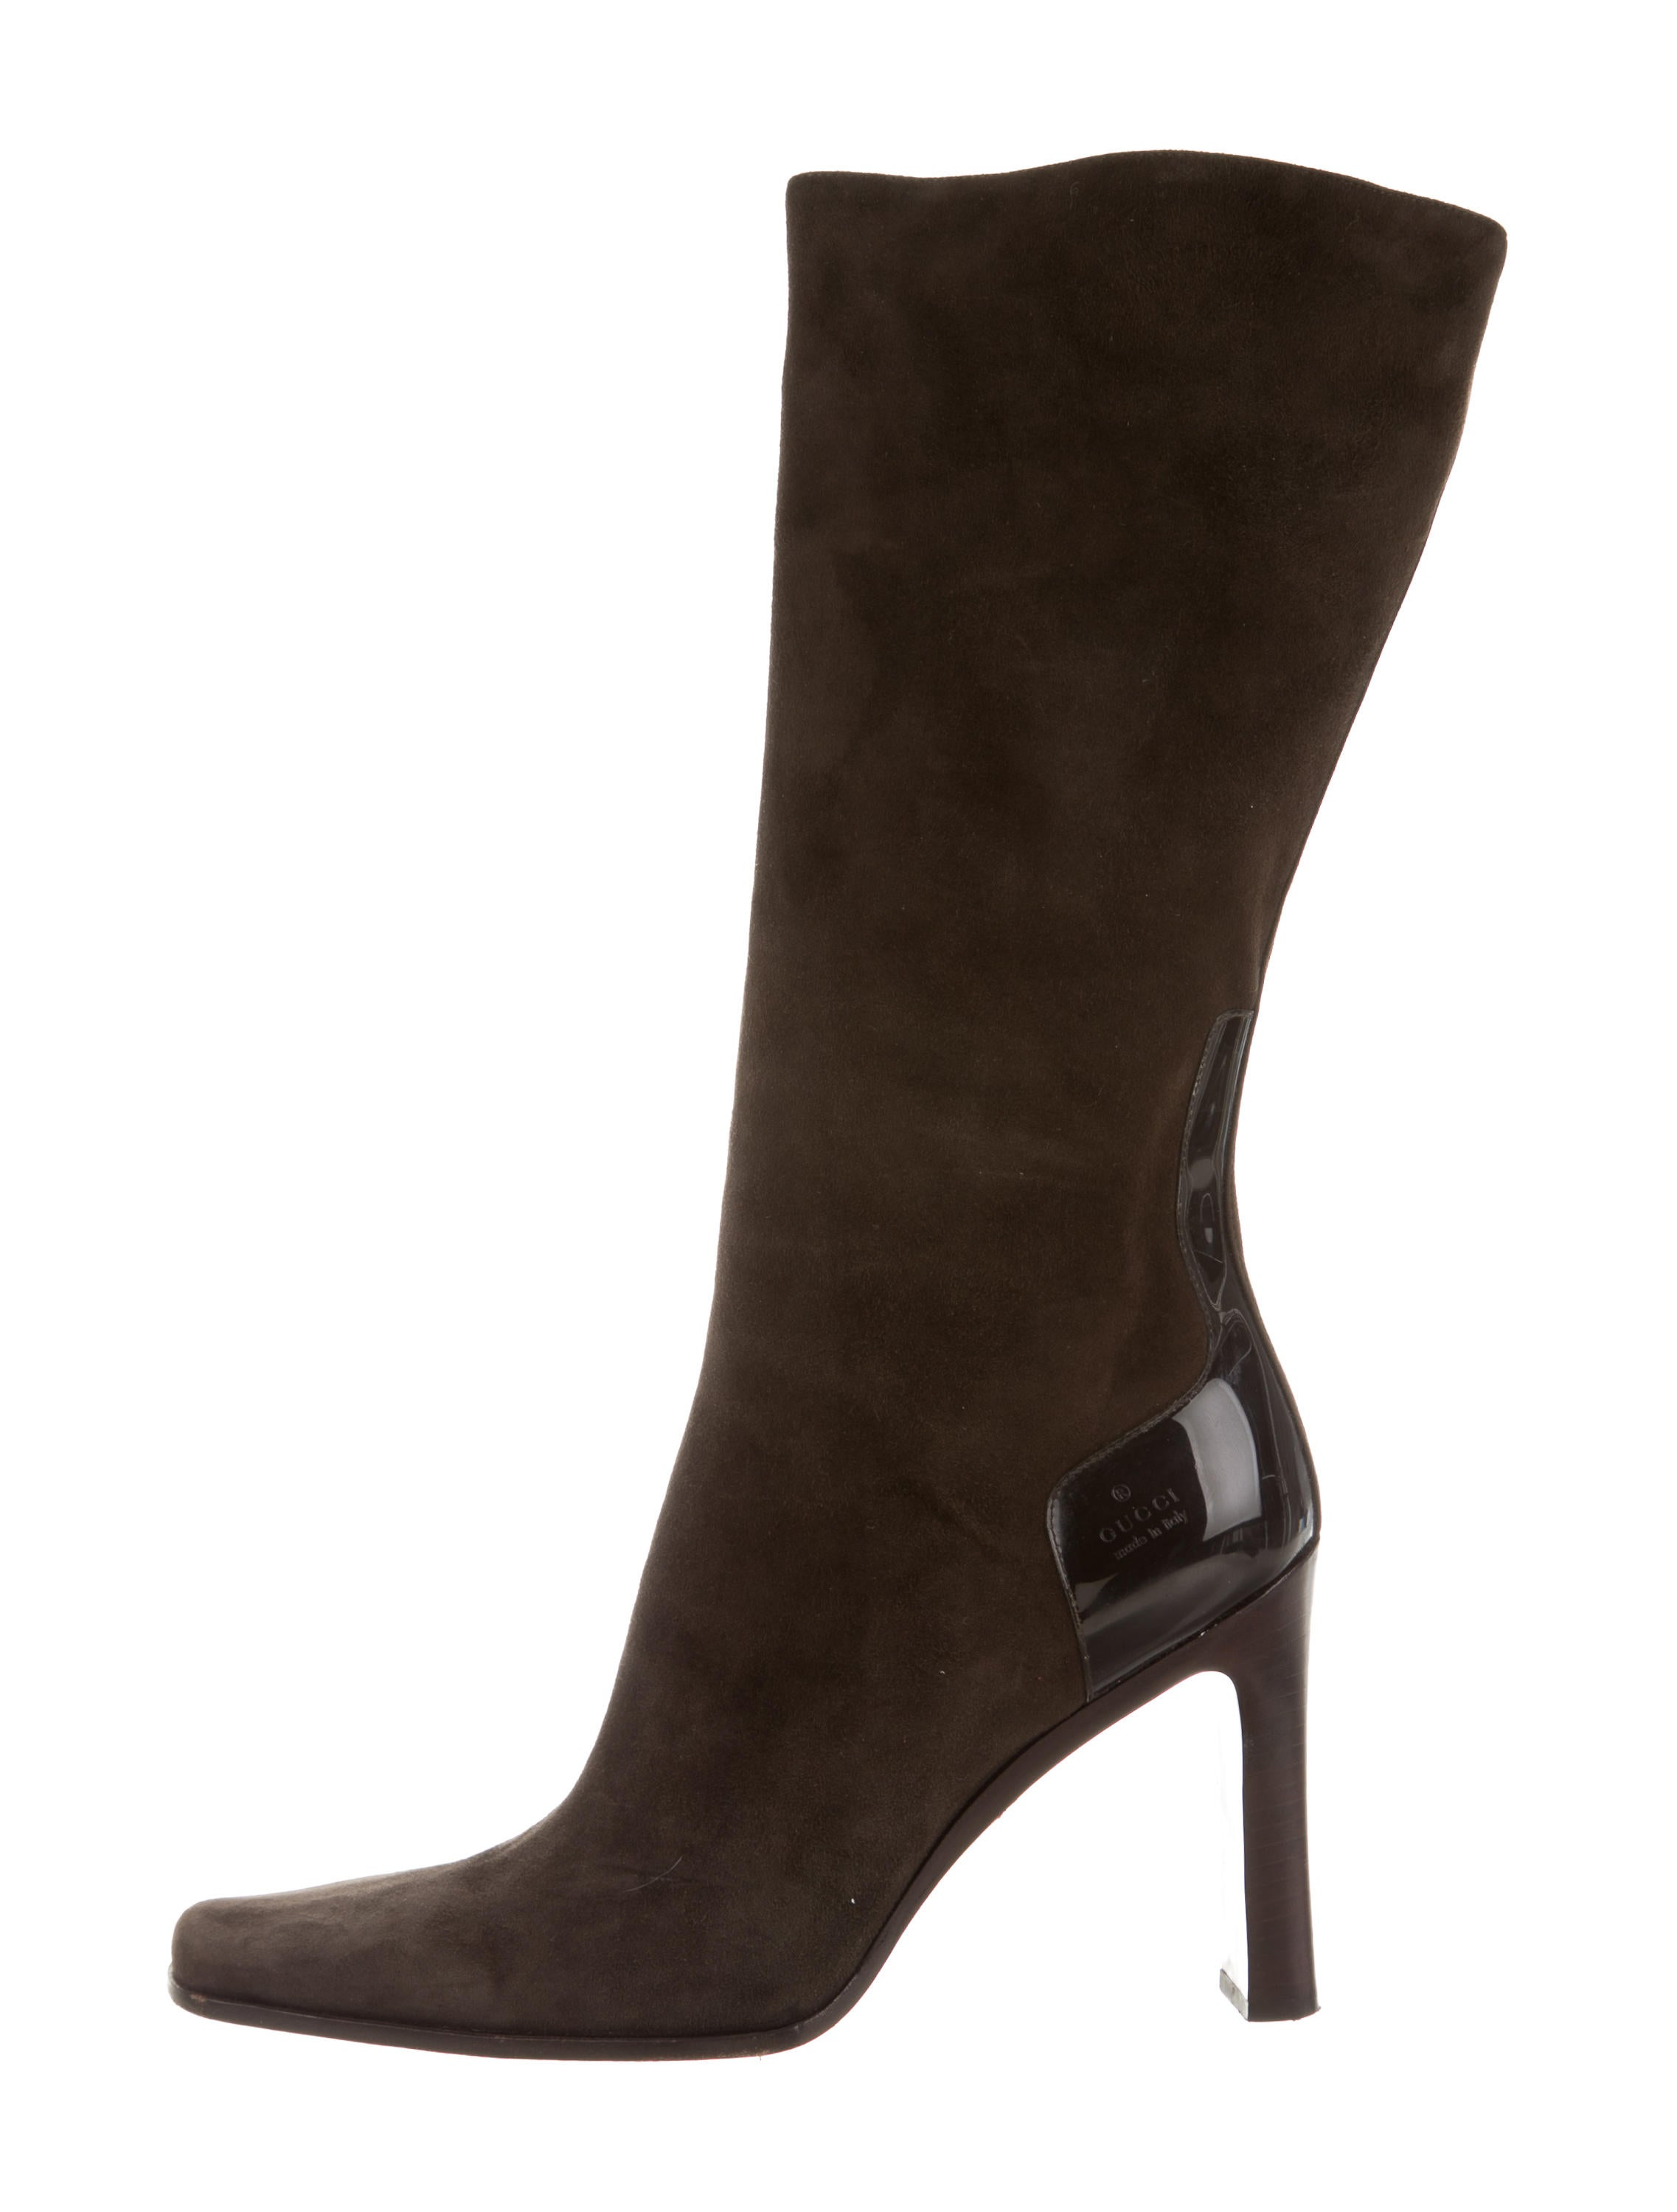 Shop Winter Boots At Maykool for the first quality Boots at affordable Prices, + womens fashion boots shoes including womens boots,combat boots,cowgirl boots,riding boots,rain boots,thigh high boots,ankle boots,over the knee boots,snow boots,black boots,wedge booties,leather boots .